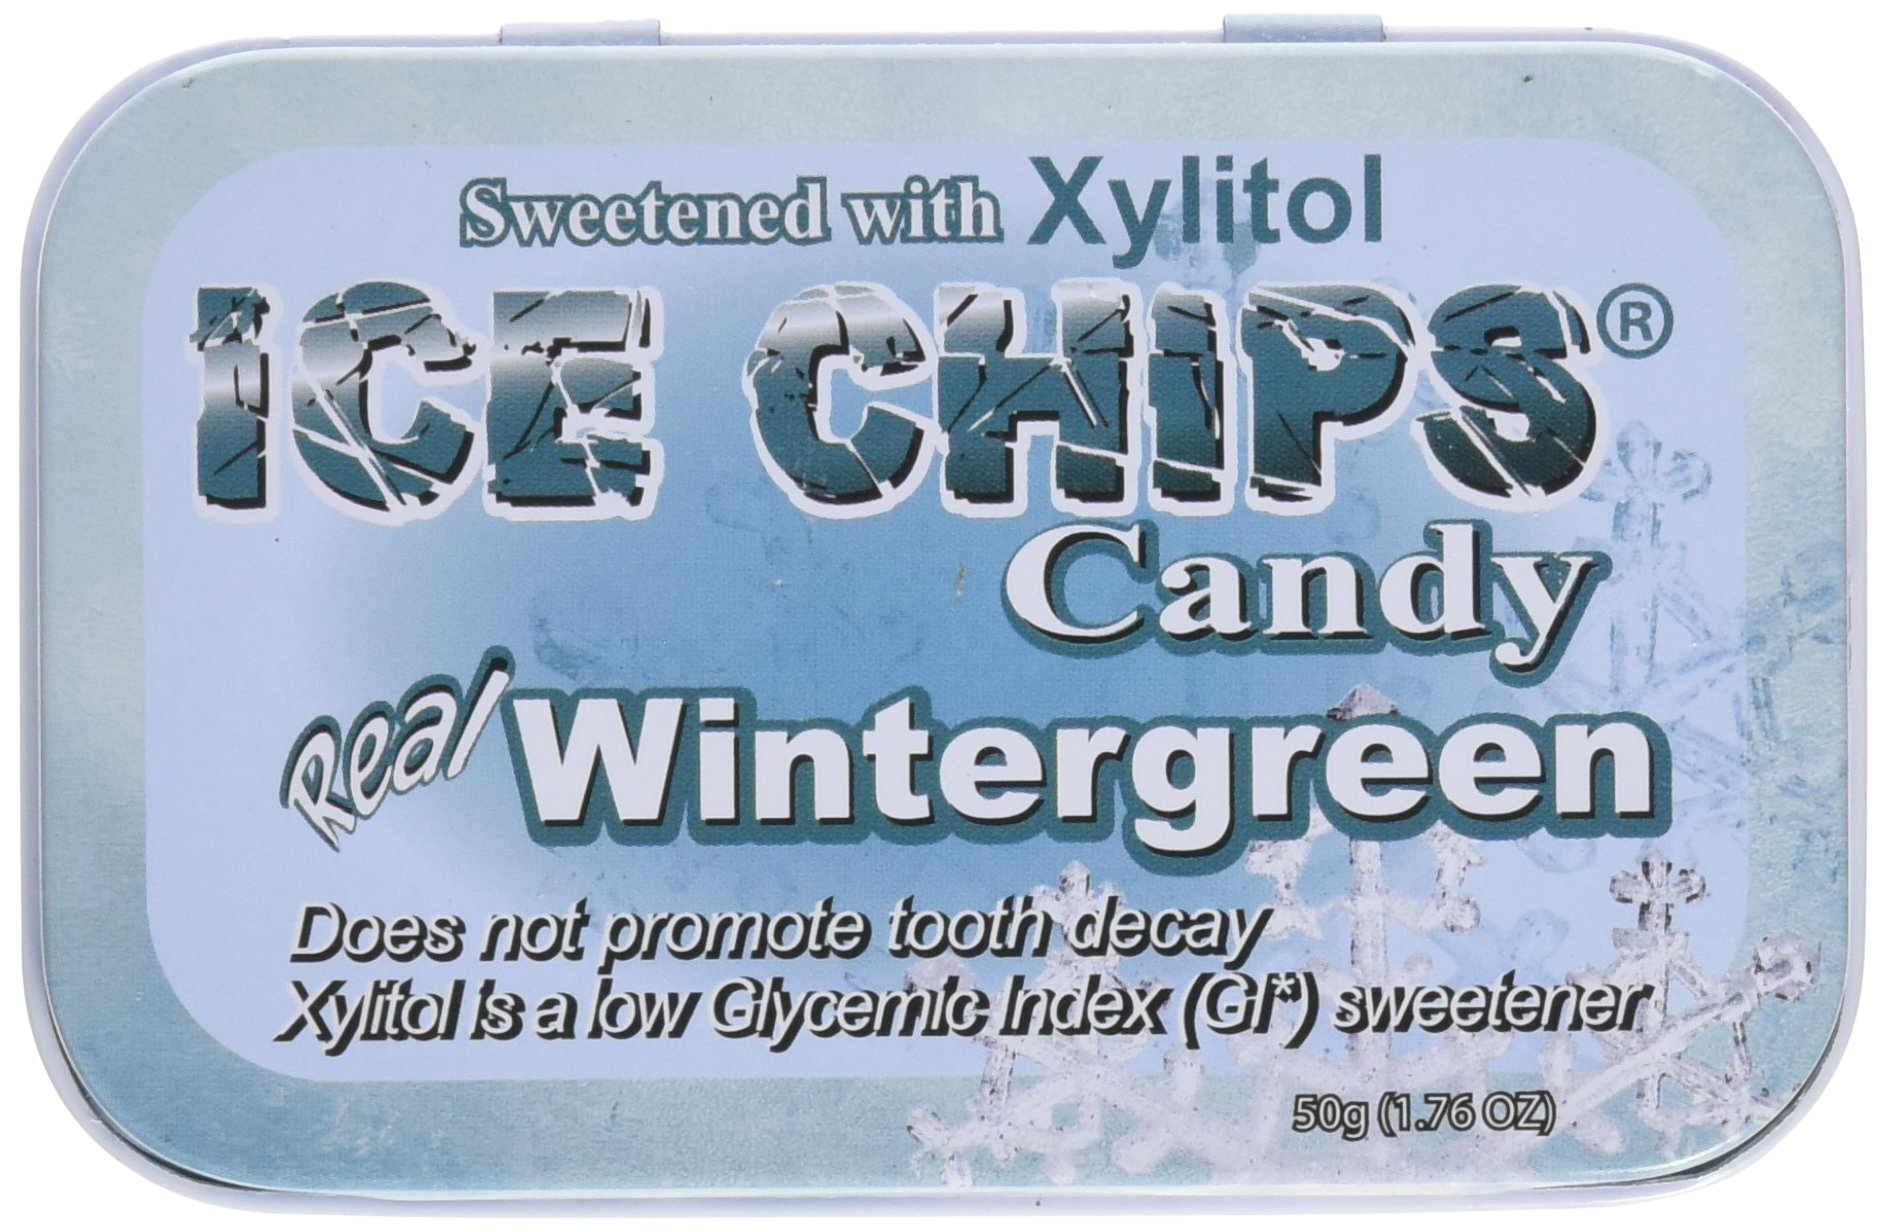 ICE CHIPS Candy Hand Crafted Tin, Wintergreen, 1.76 Ounce